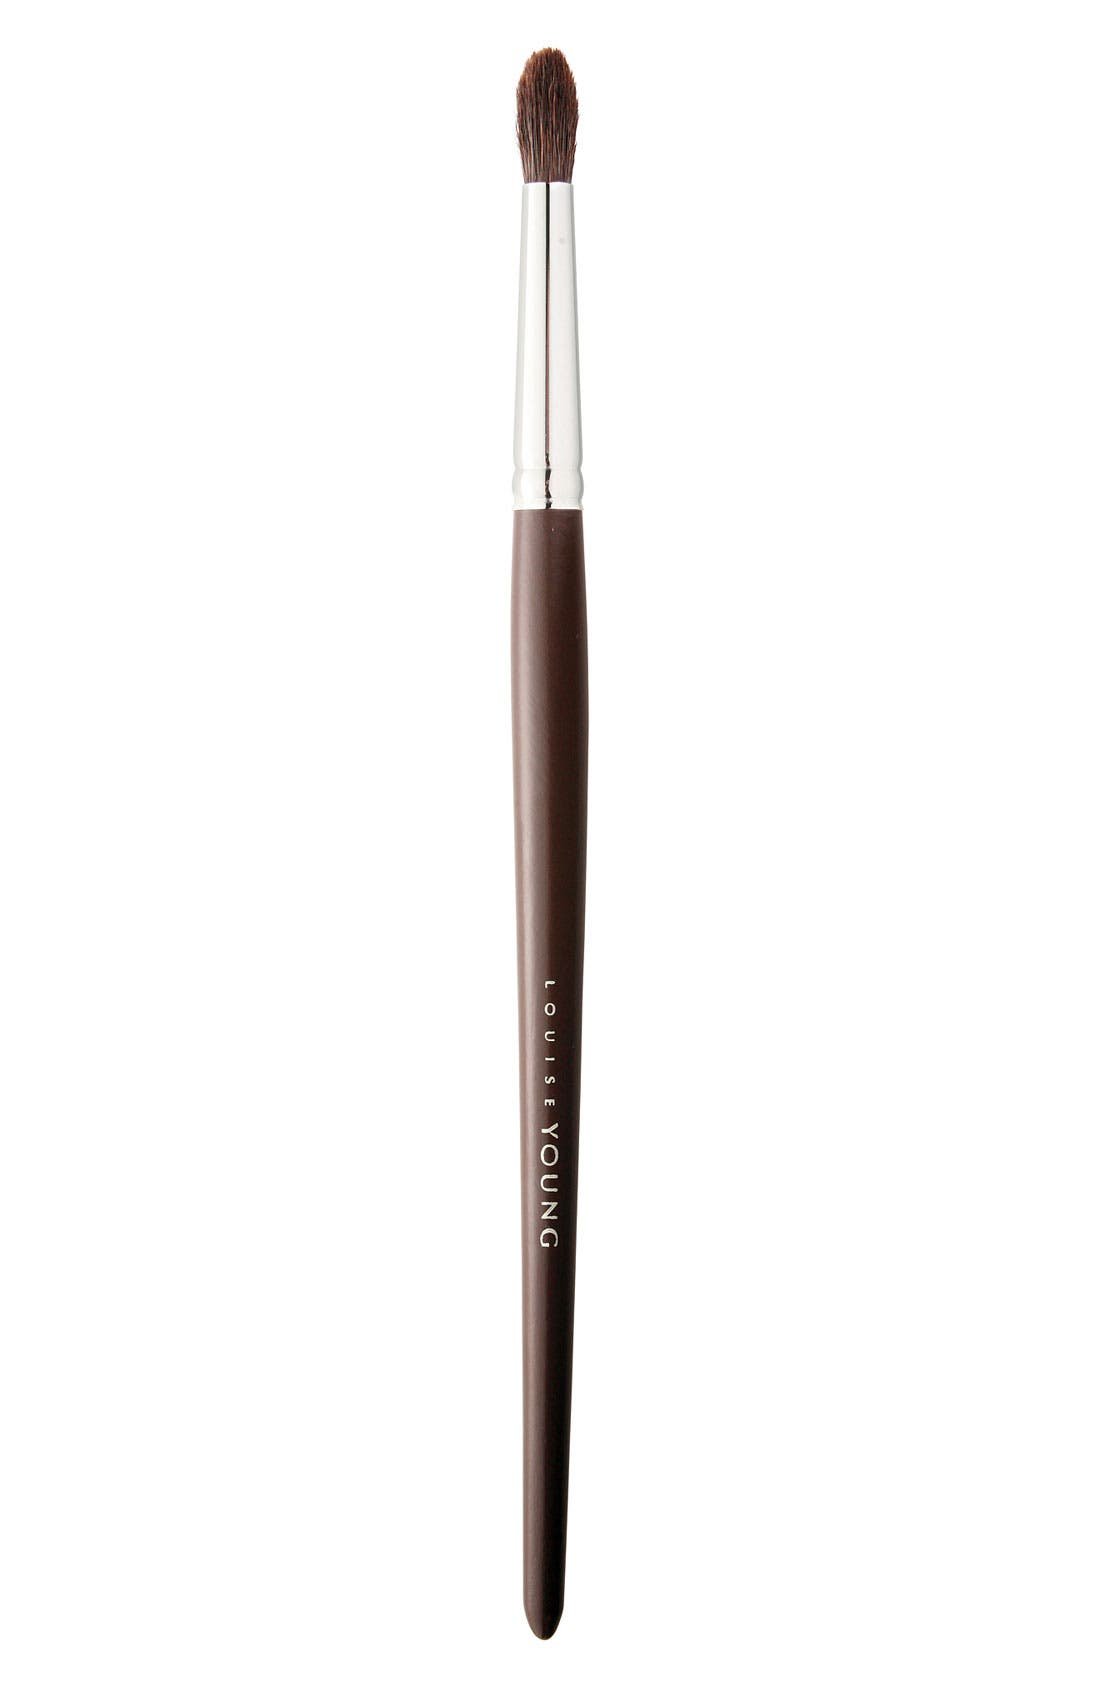 Louise Young Cosmetics LY38 Tapered Shadow Brush